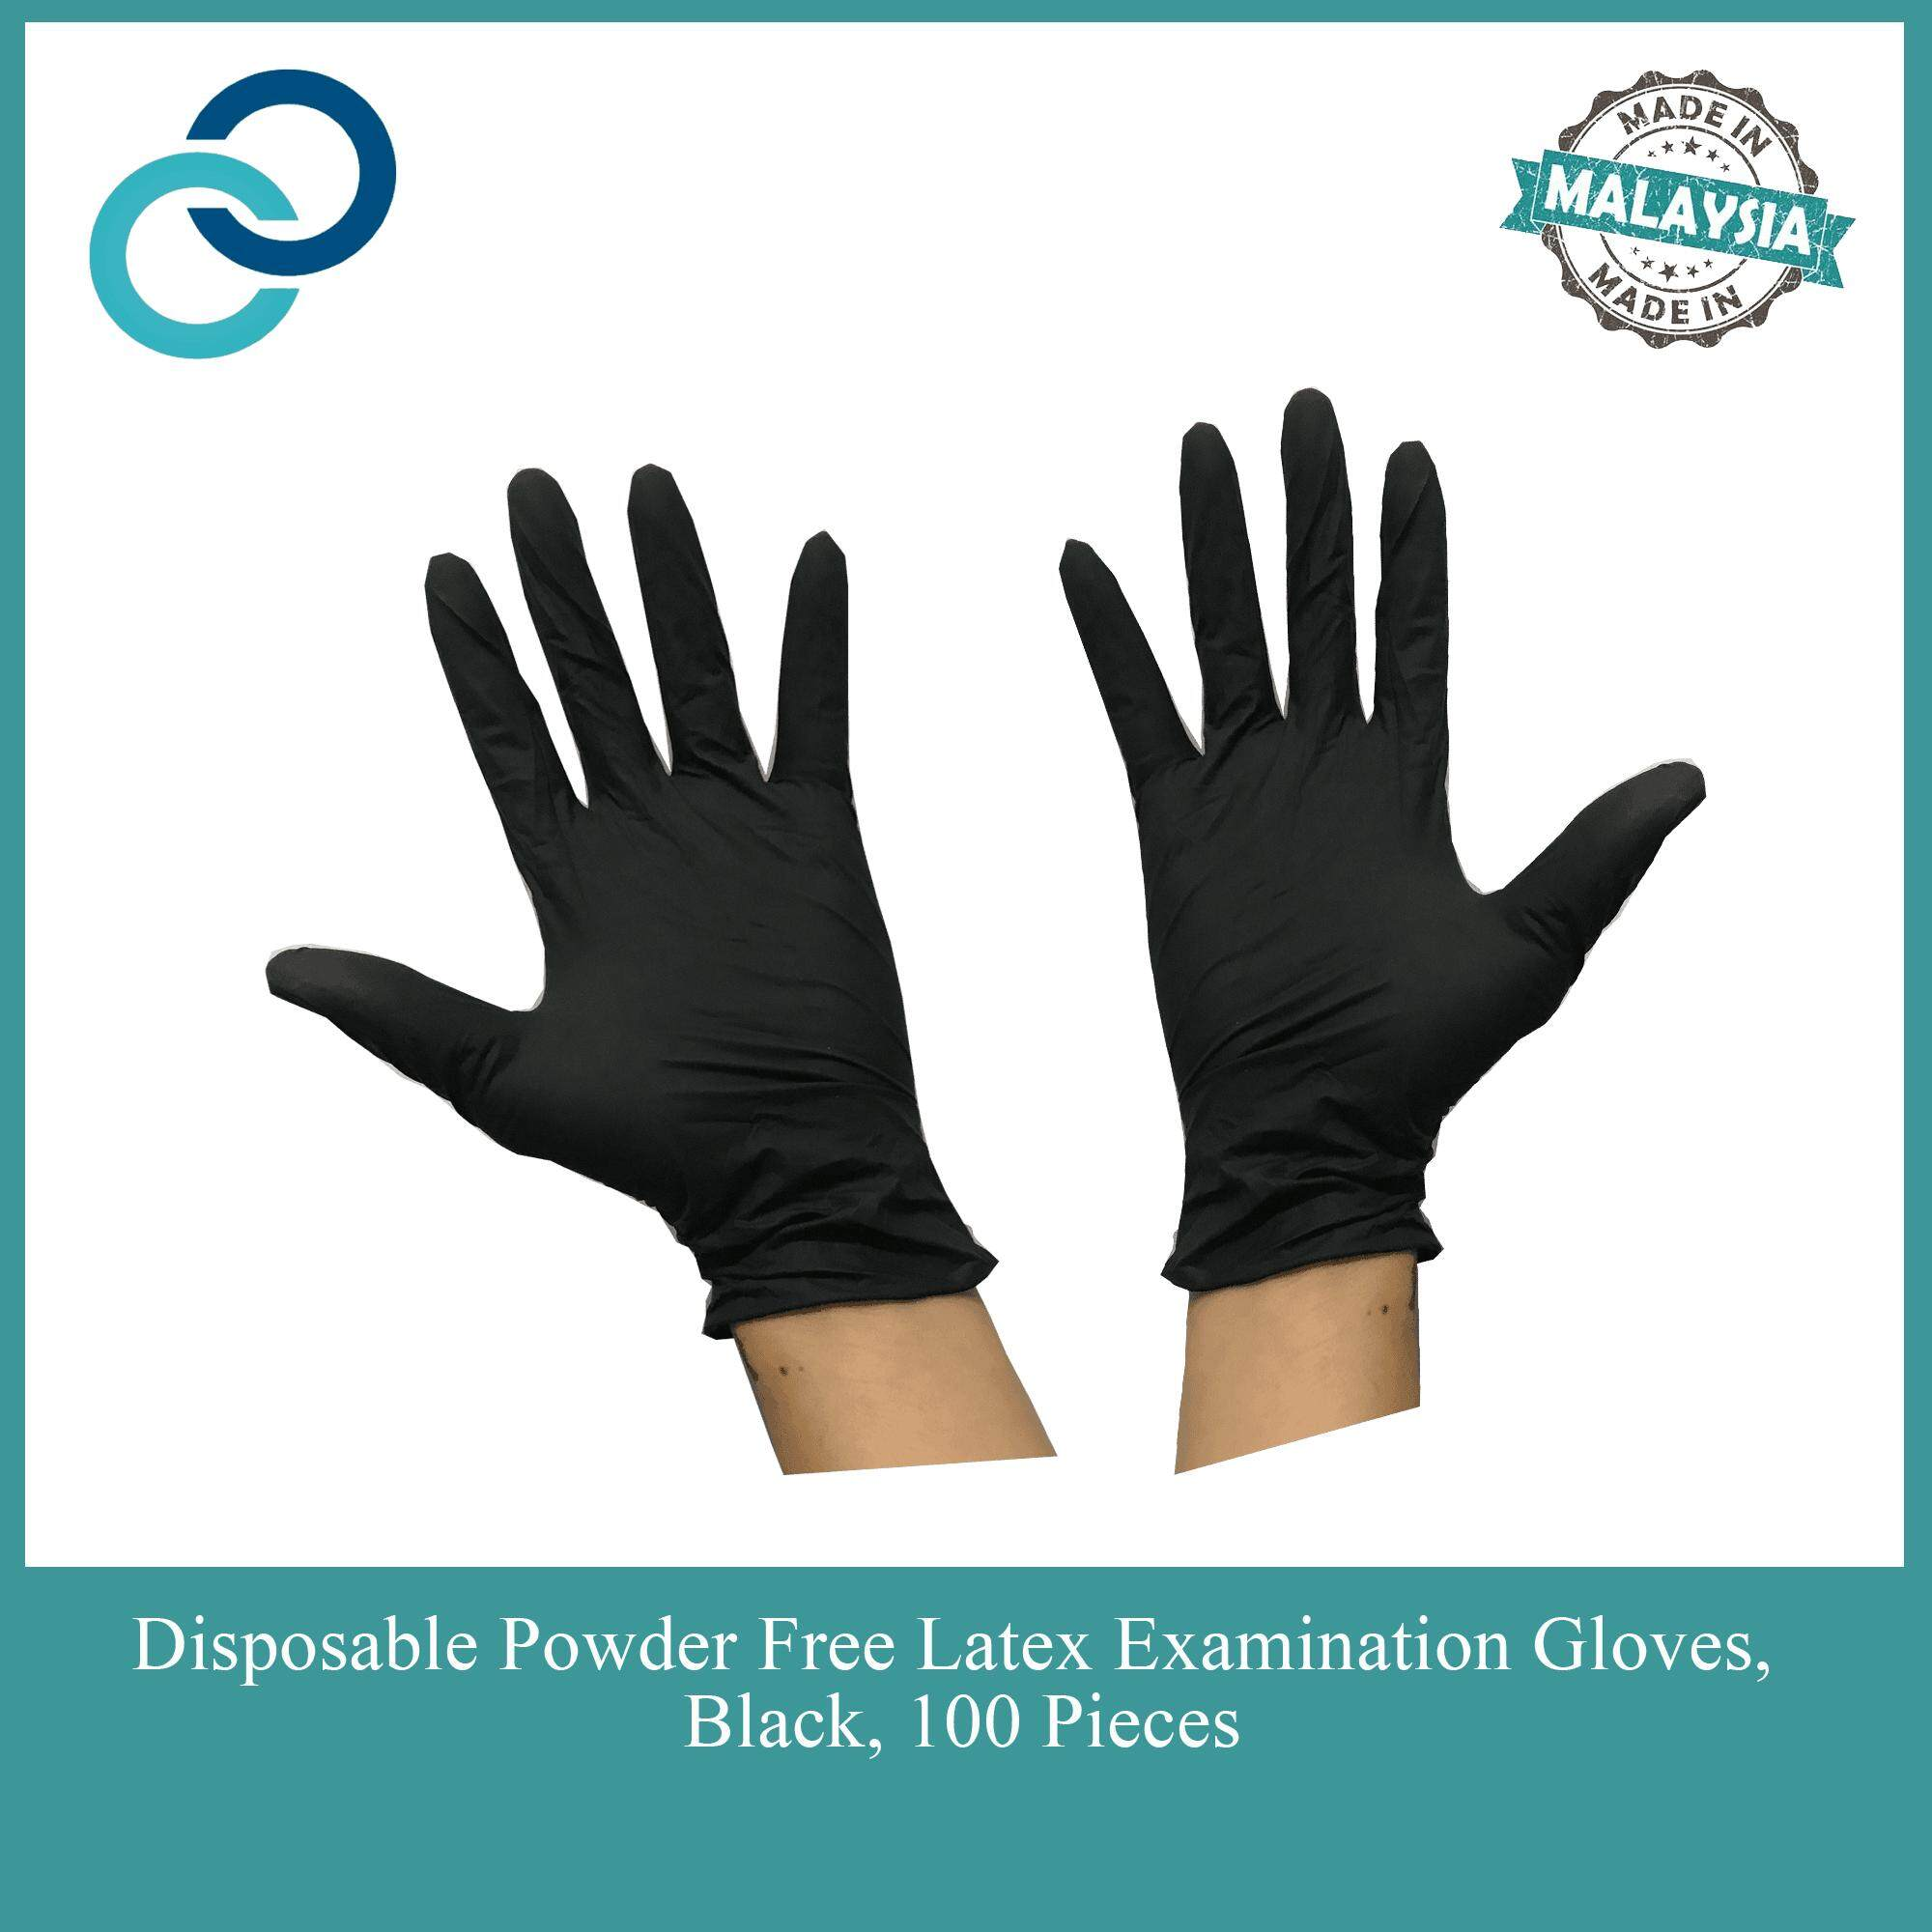 [CLEAR STOCK] Disposable Powder Free Latex Glove Black Size L 100 Pieces